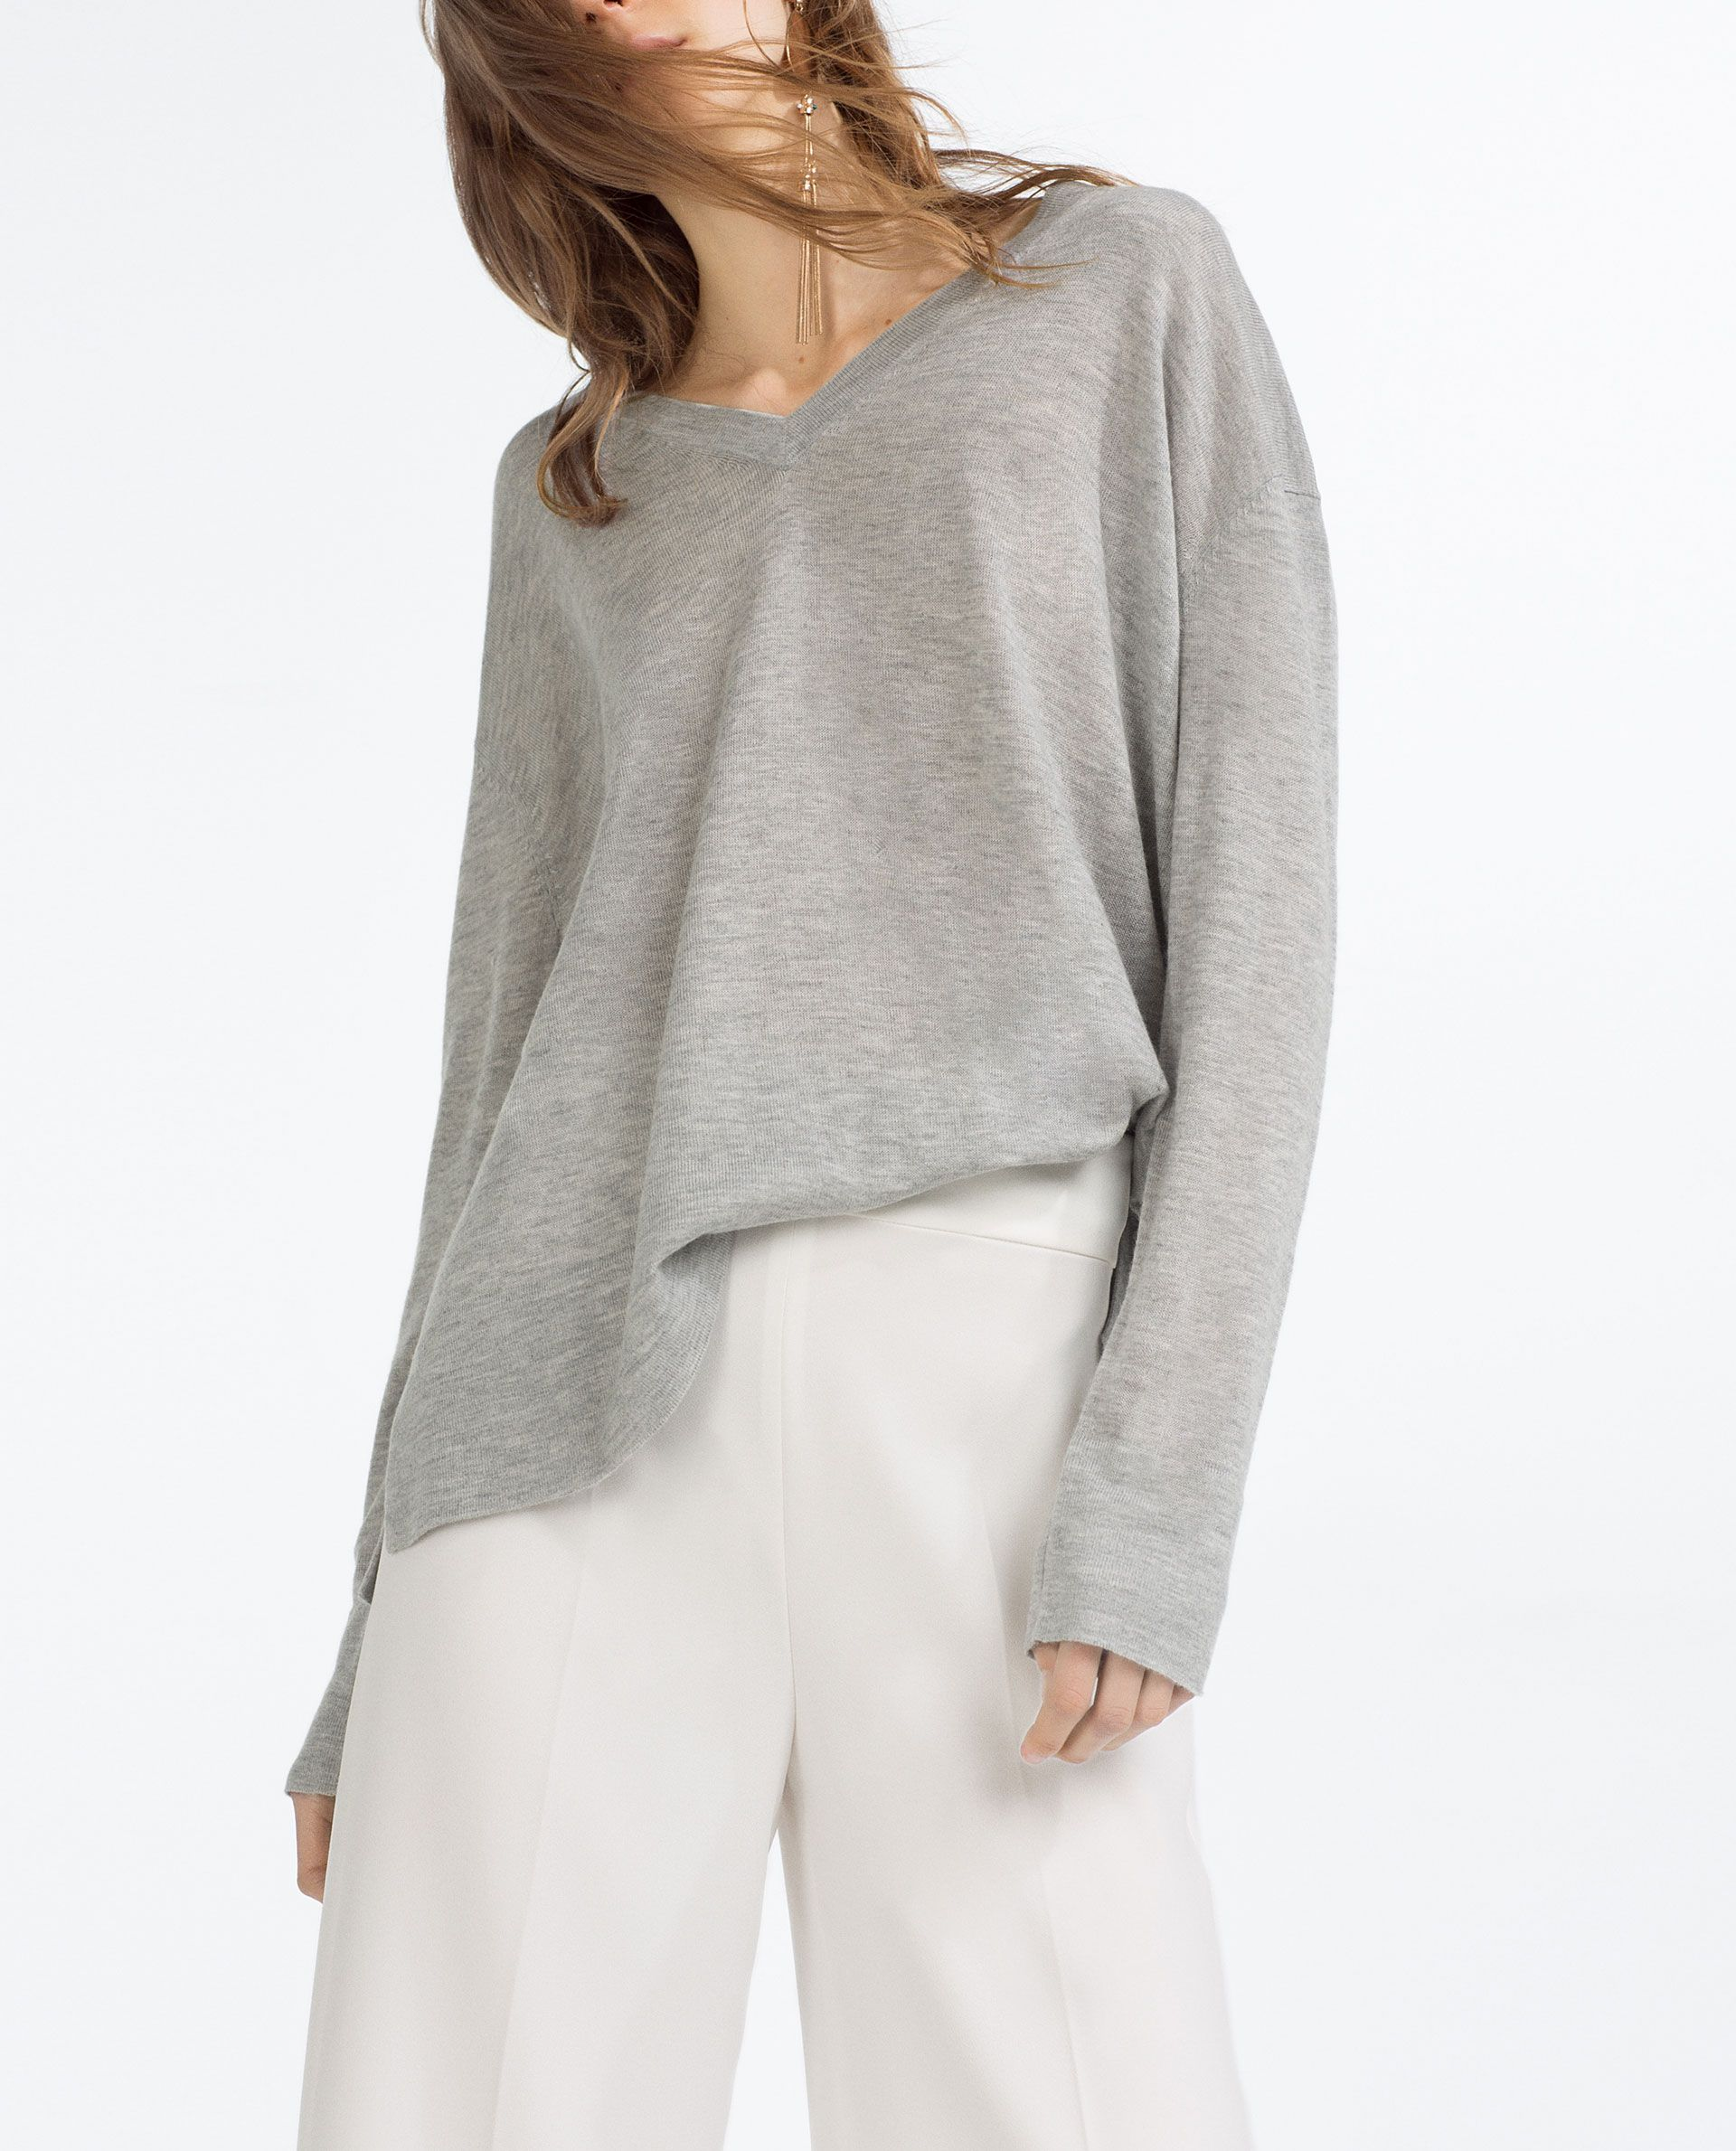 Image 1 of OVERSIZED SWEATER from Zara | Wish list - Fashion ...